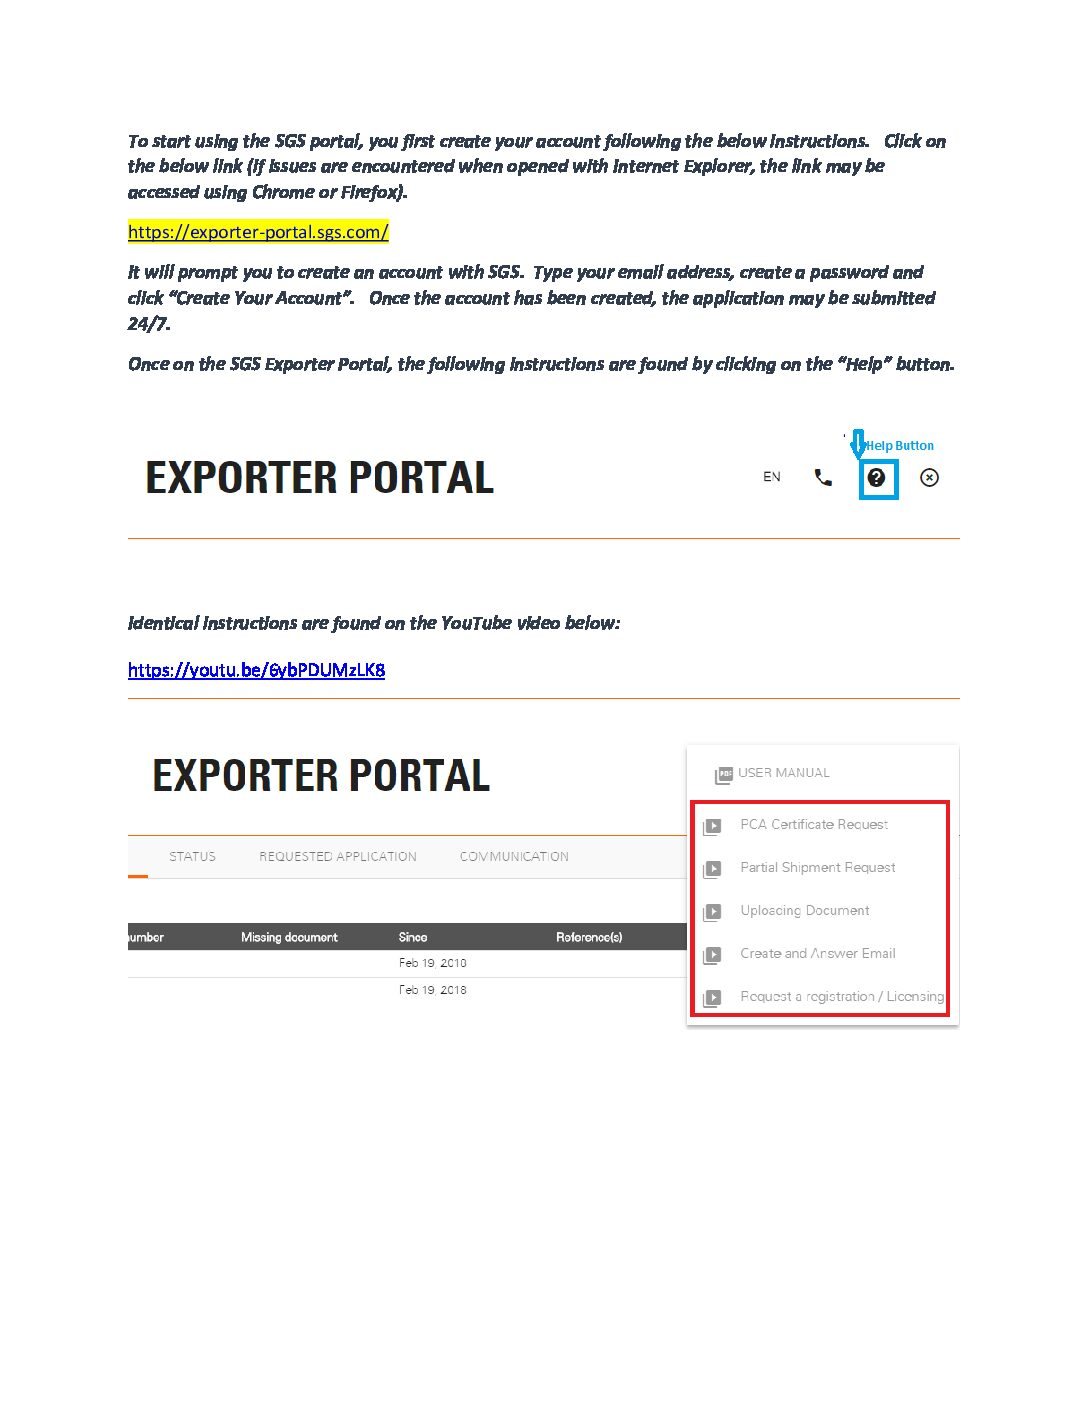 exporters-portal-step-by-step-instructions-1-pdf.jpg